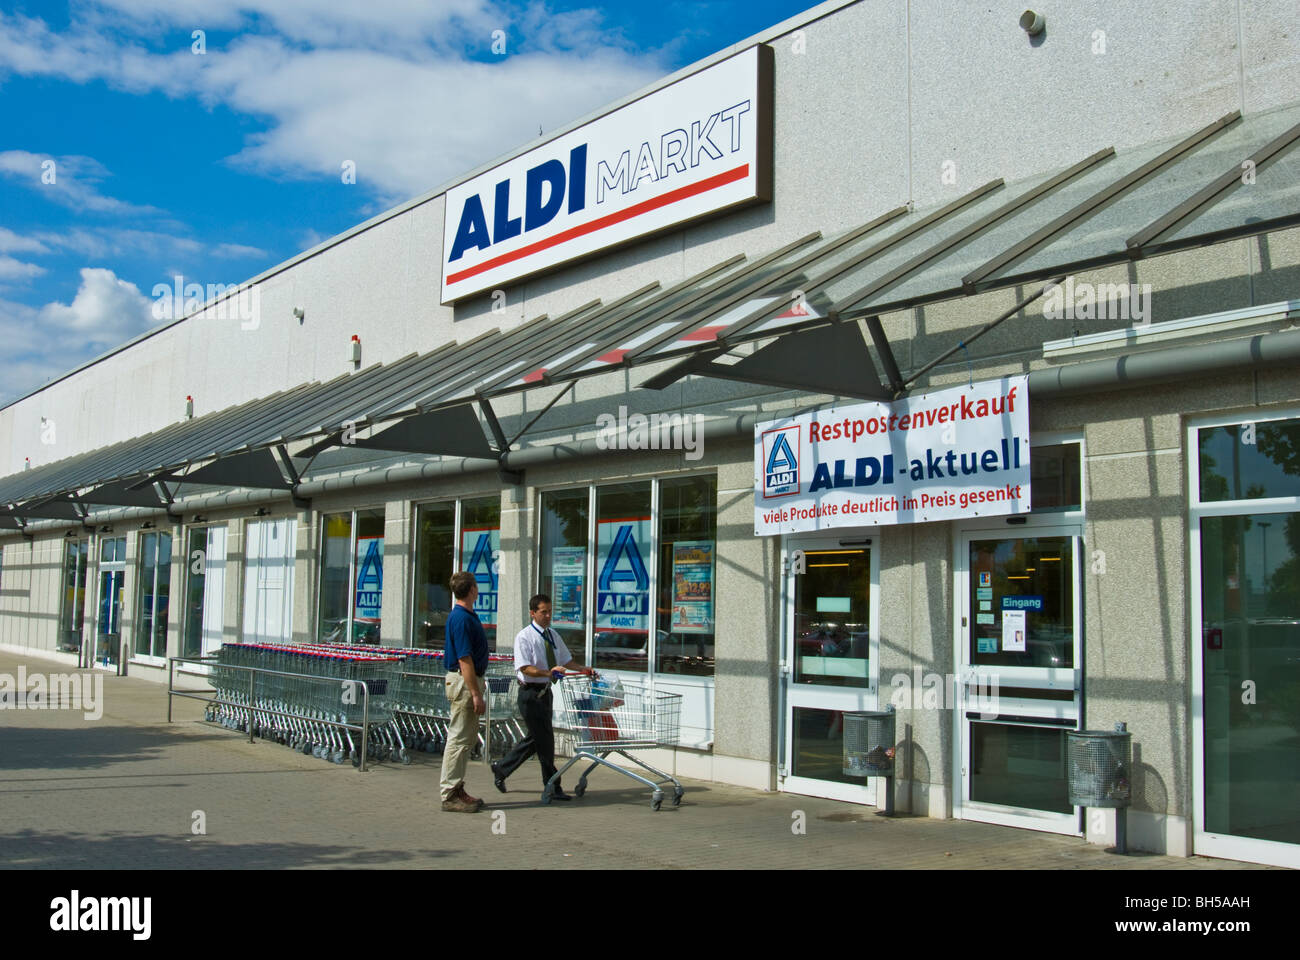 Aldi Nord Restposten Verkauf Entrance Of An Aldi Discount Food And Grocery Store Germany Stock